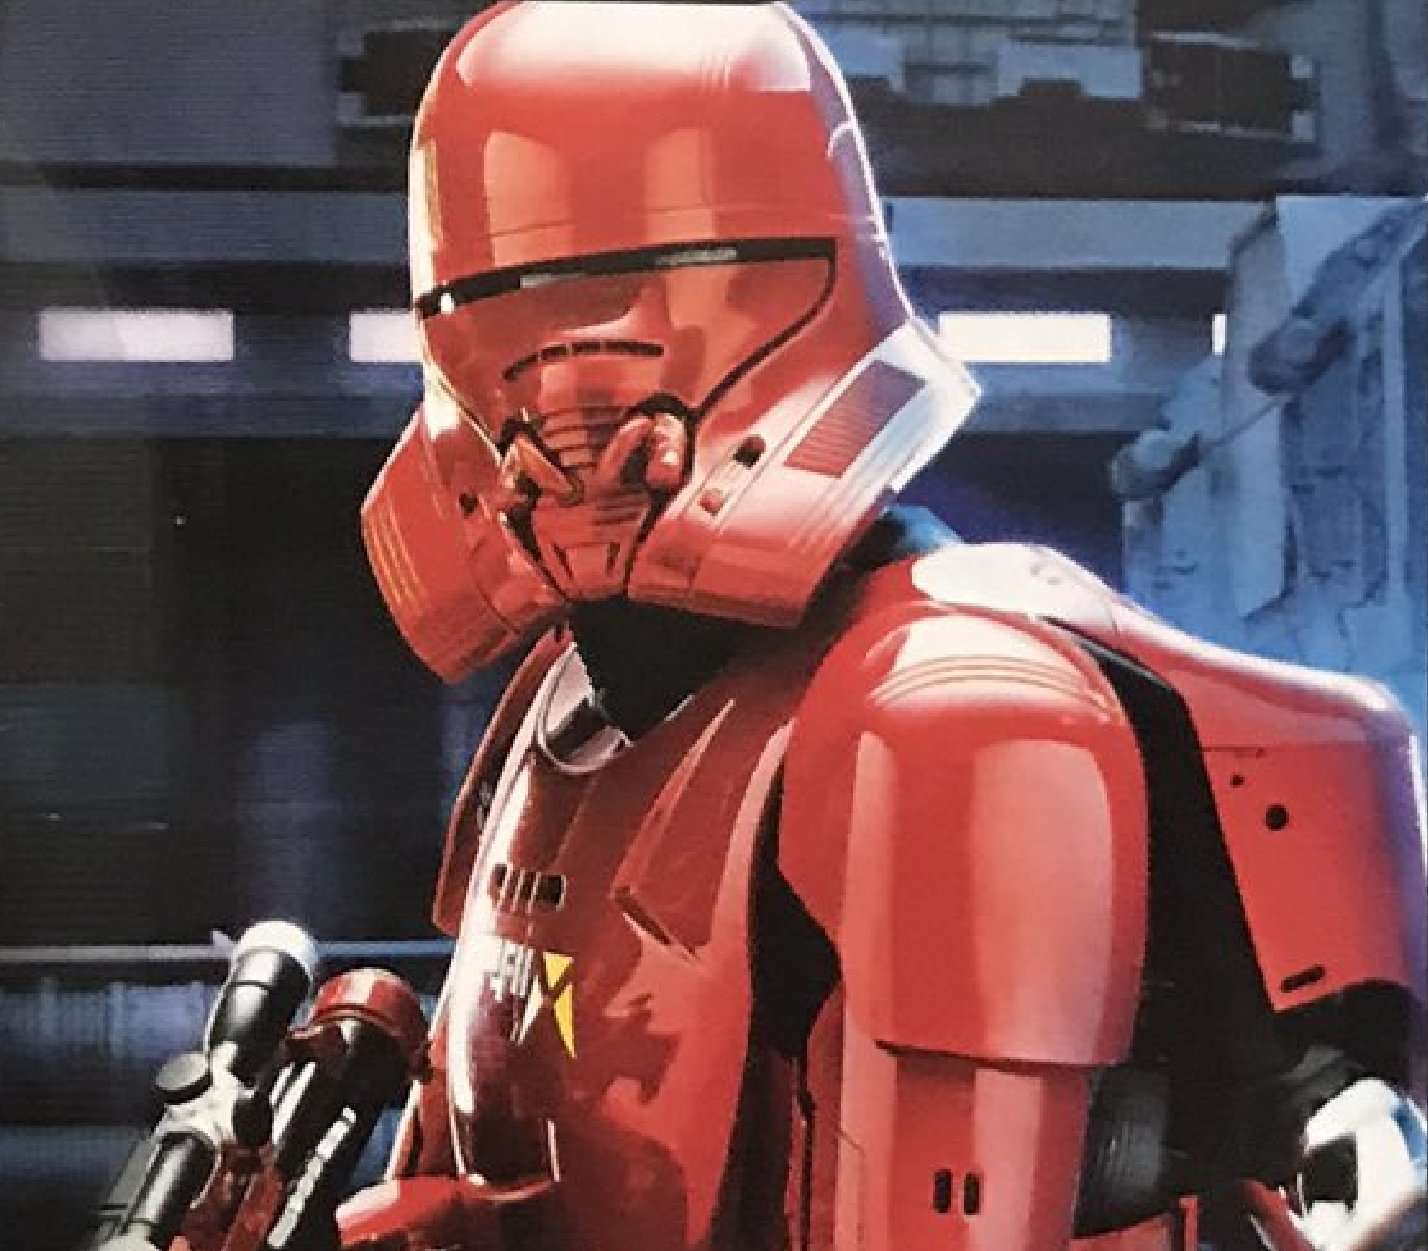 Star Wars The Rise Of Skywalker The Mandalorian And Jedi Fallen Order Character Descriptions Revealed On Upcoming Figure Releases Star Wars News Net